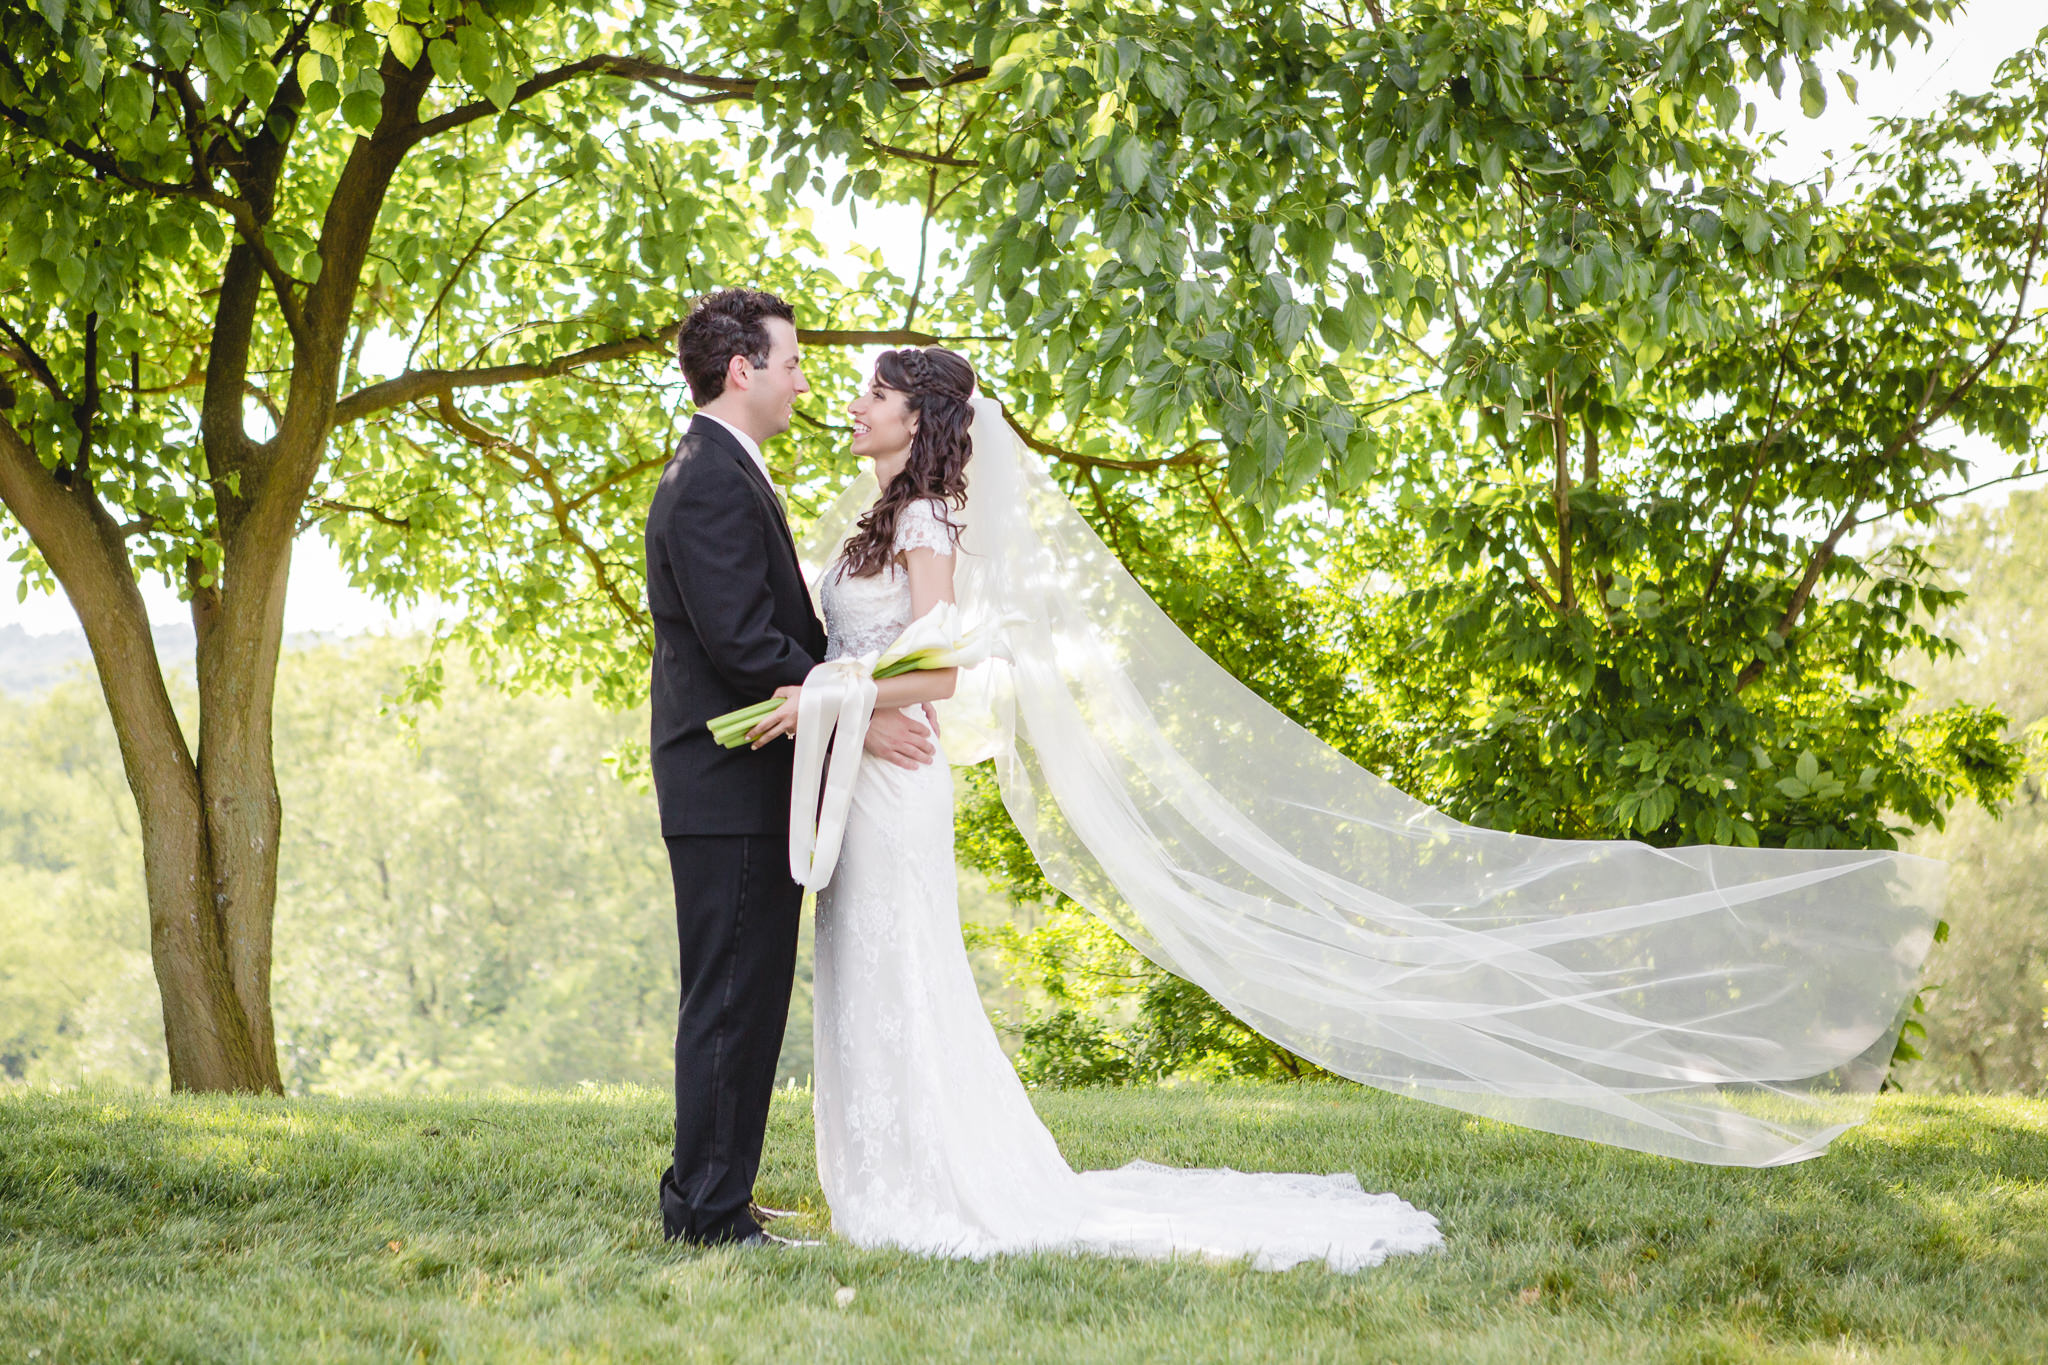 Bride's cathedral veil blowing in the wind at Greystone Fields